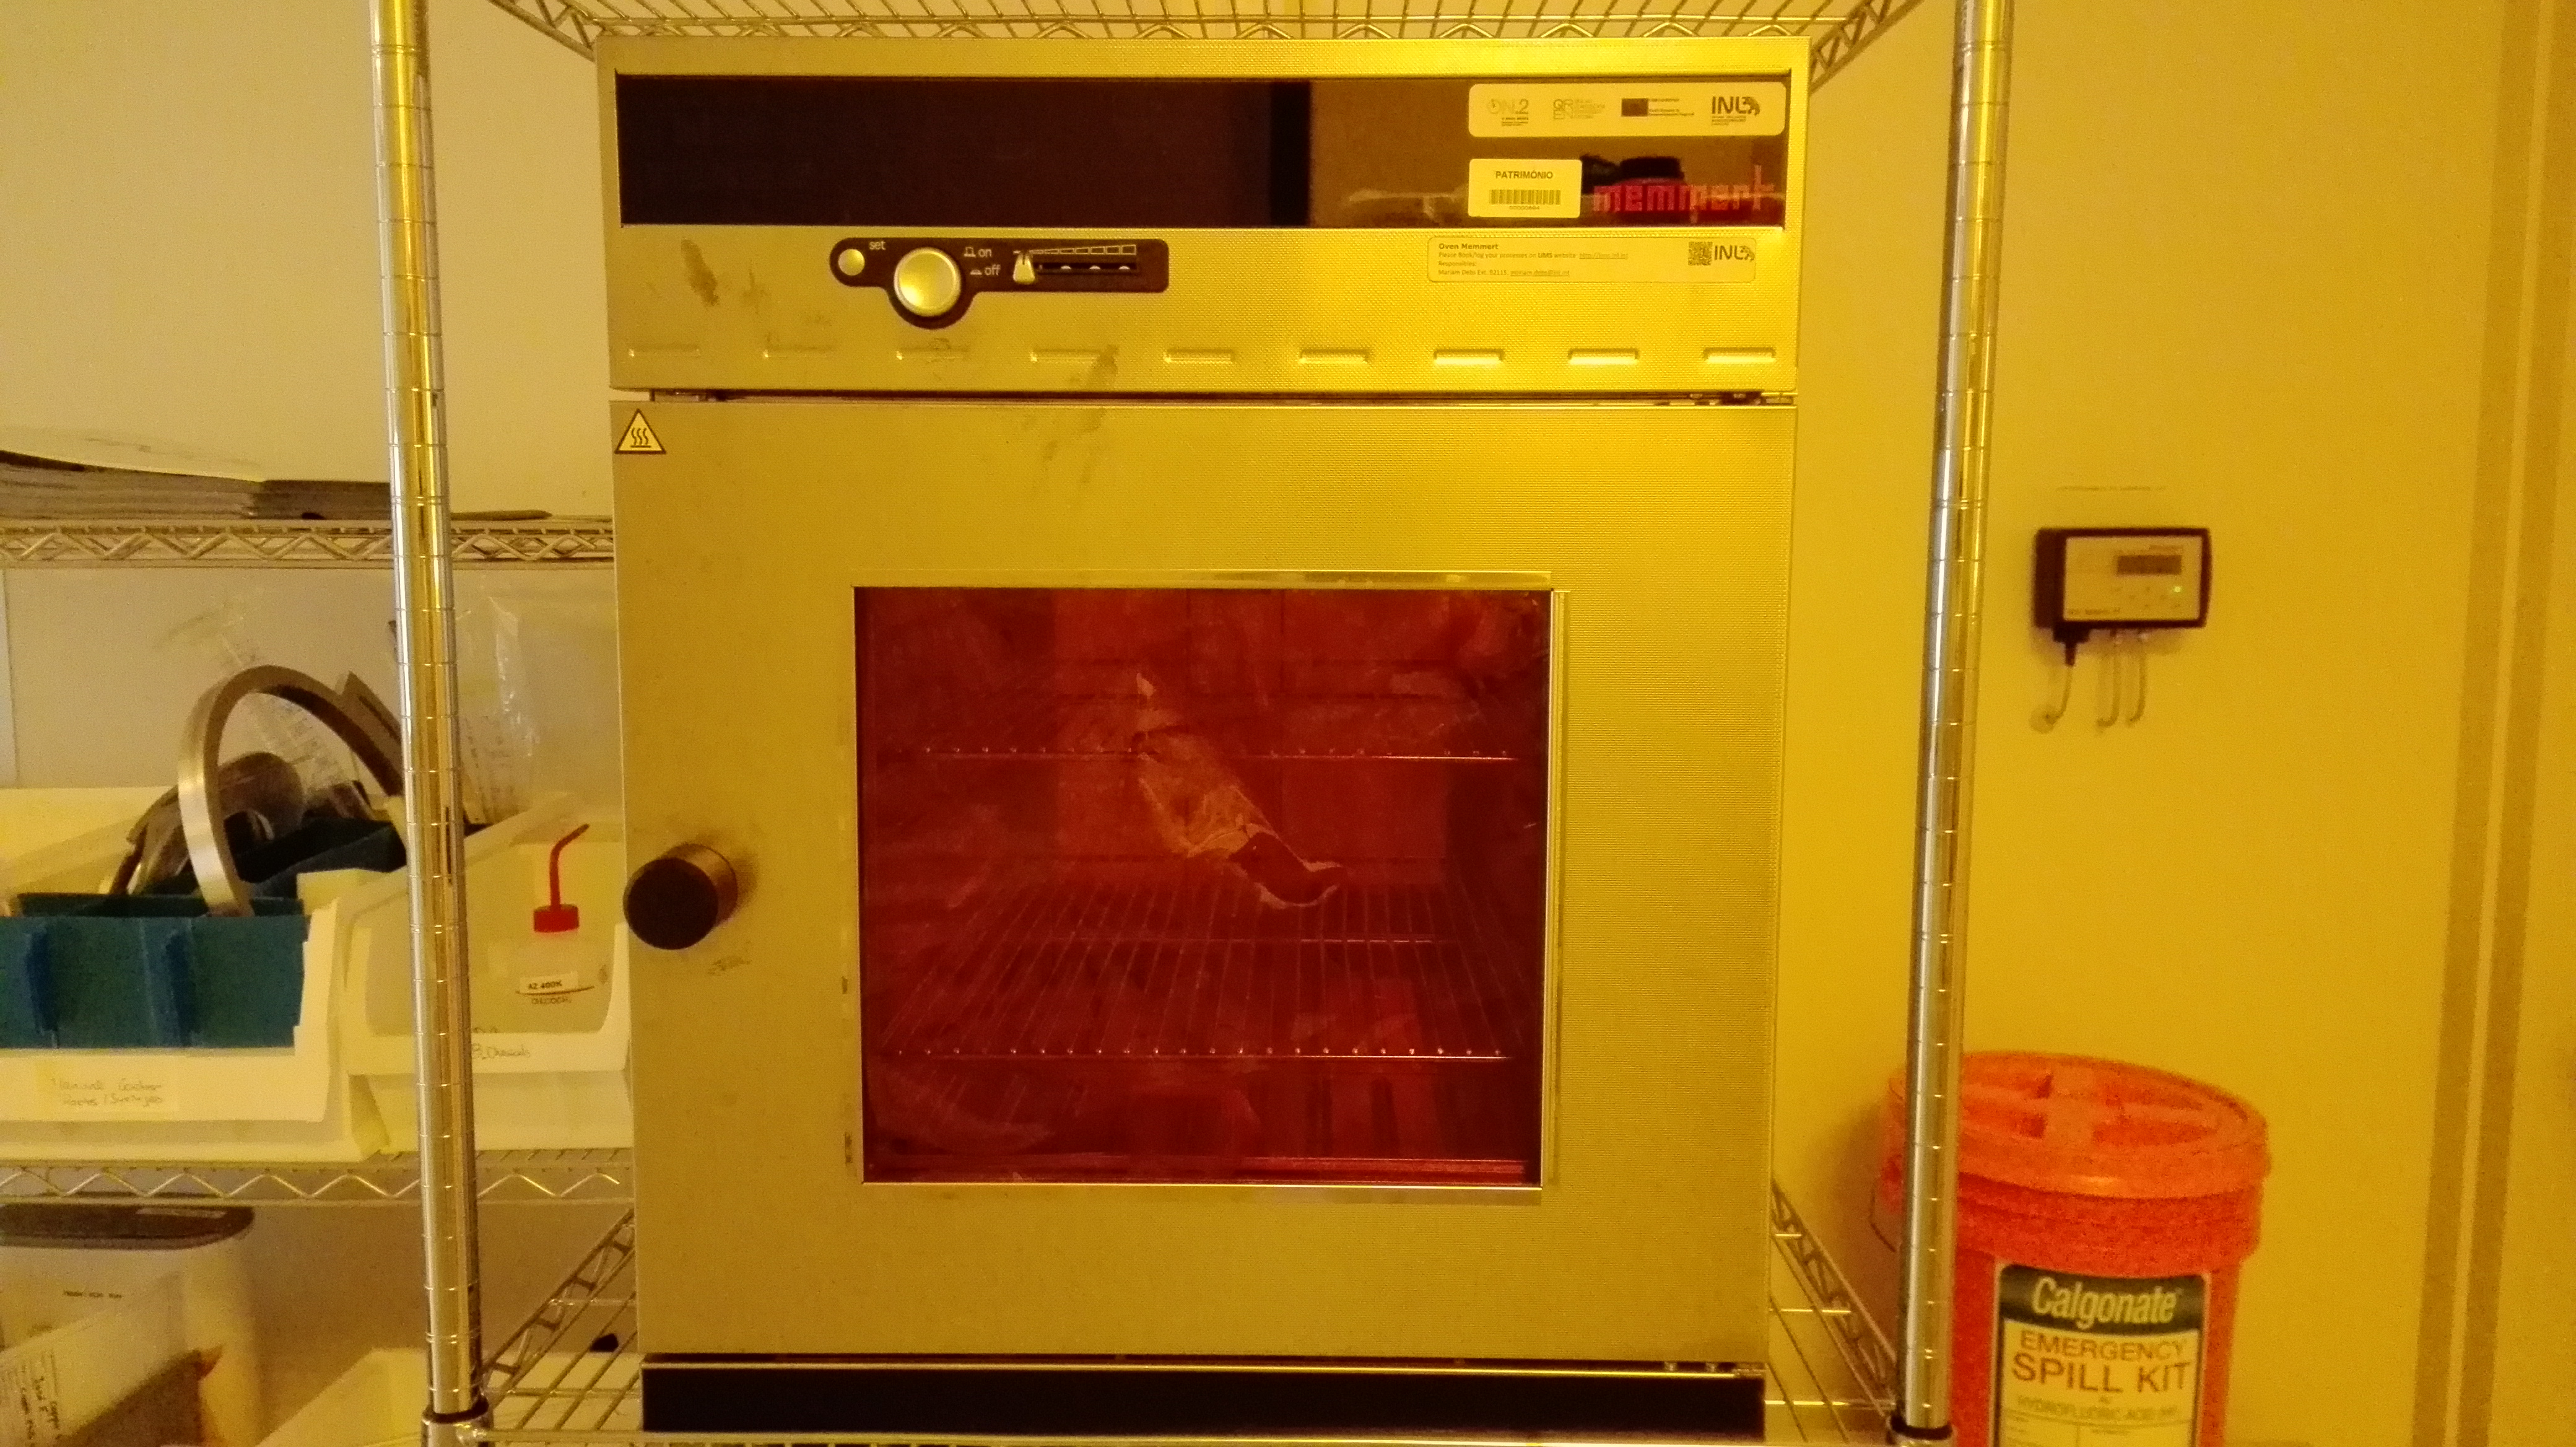 Picture of Oven Memmert